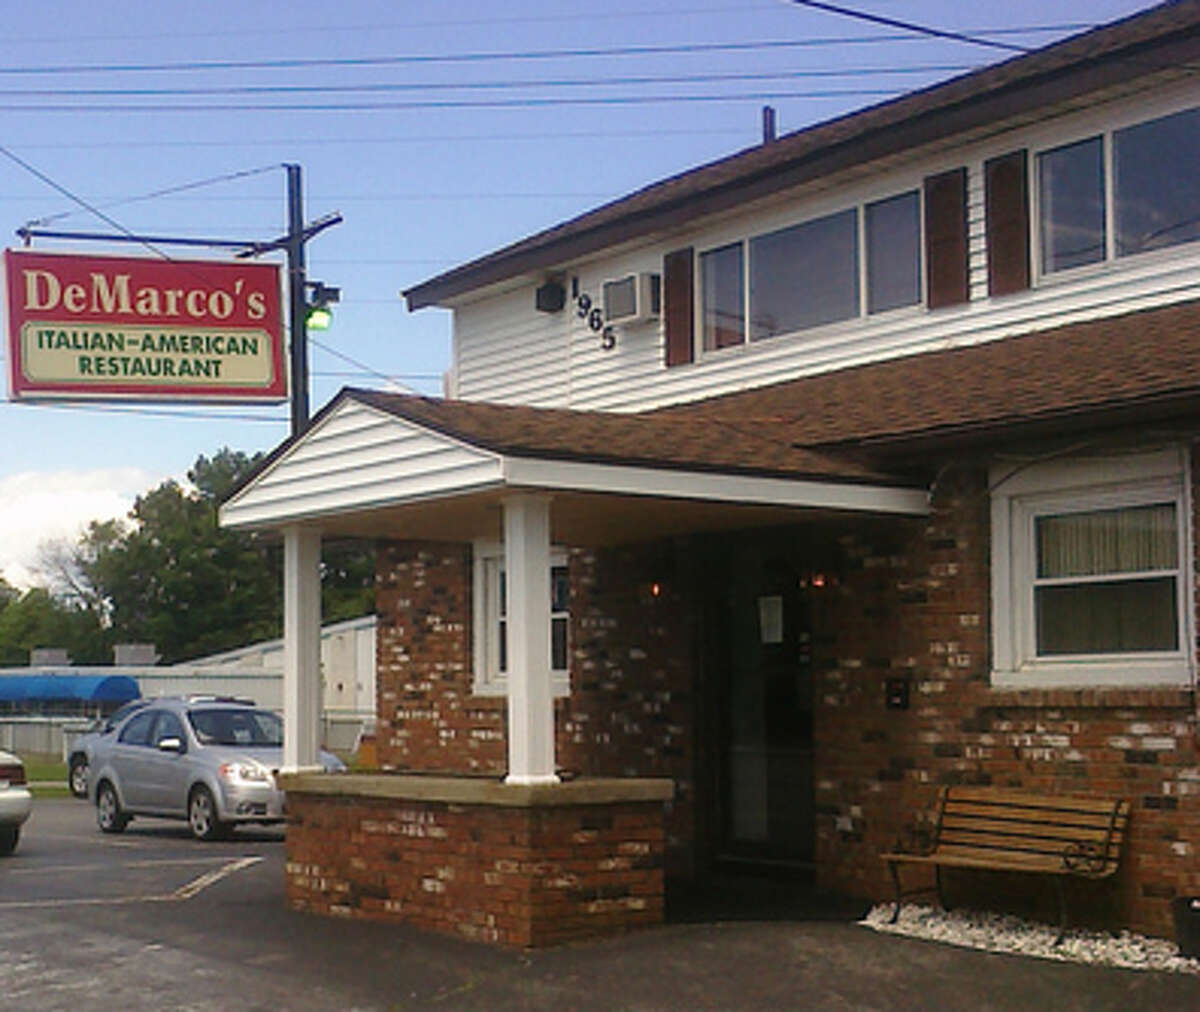 DeMarco's Restaurant at 1965 Central Ave. in Colonie.